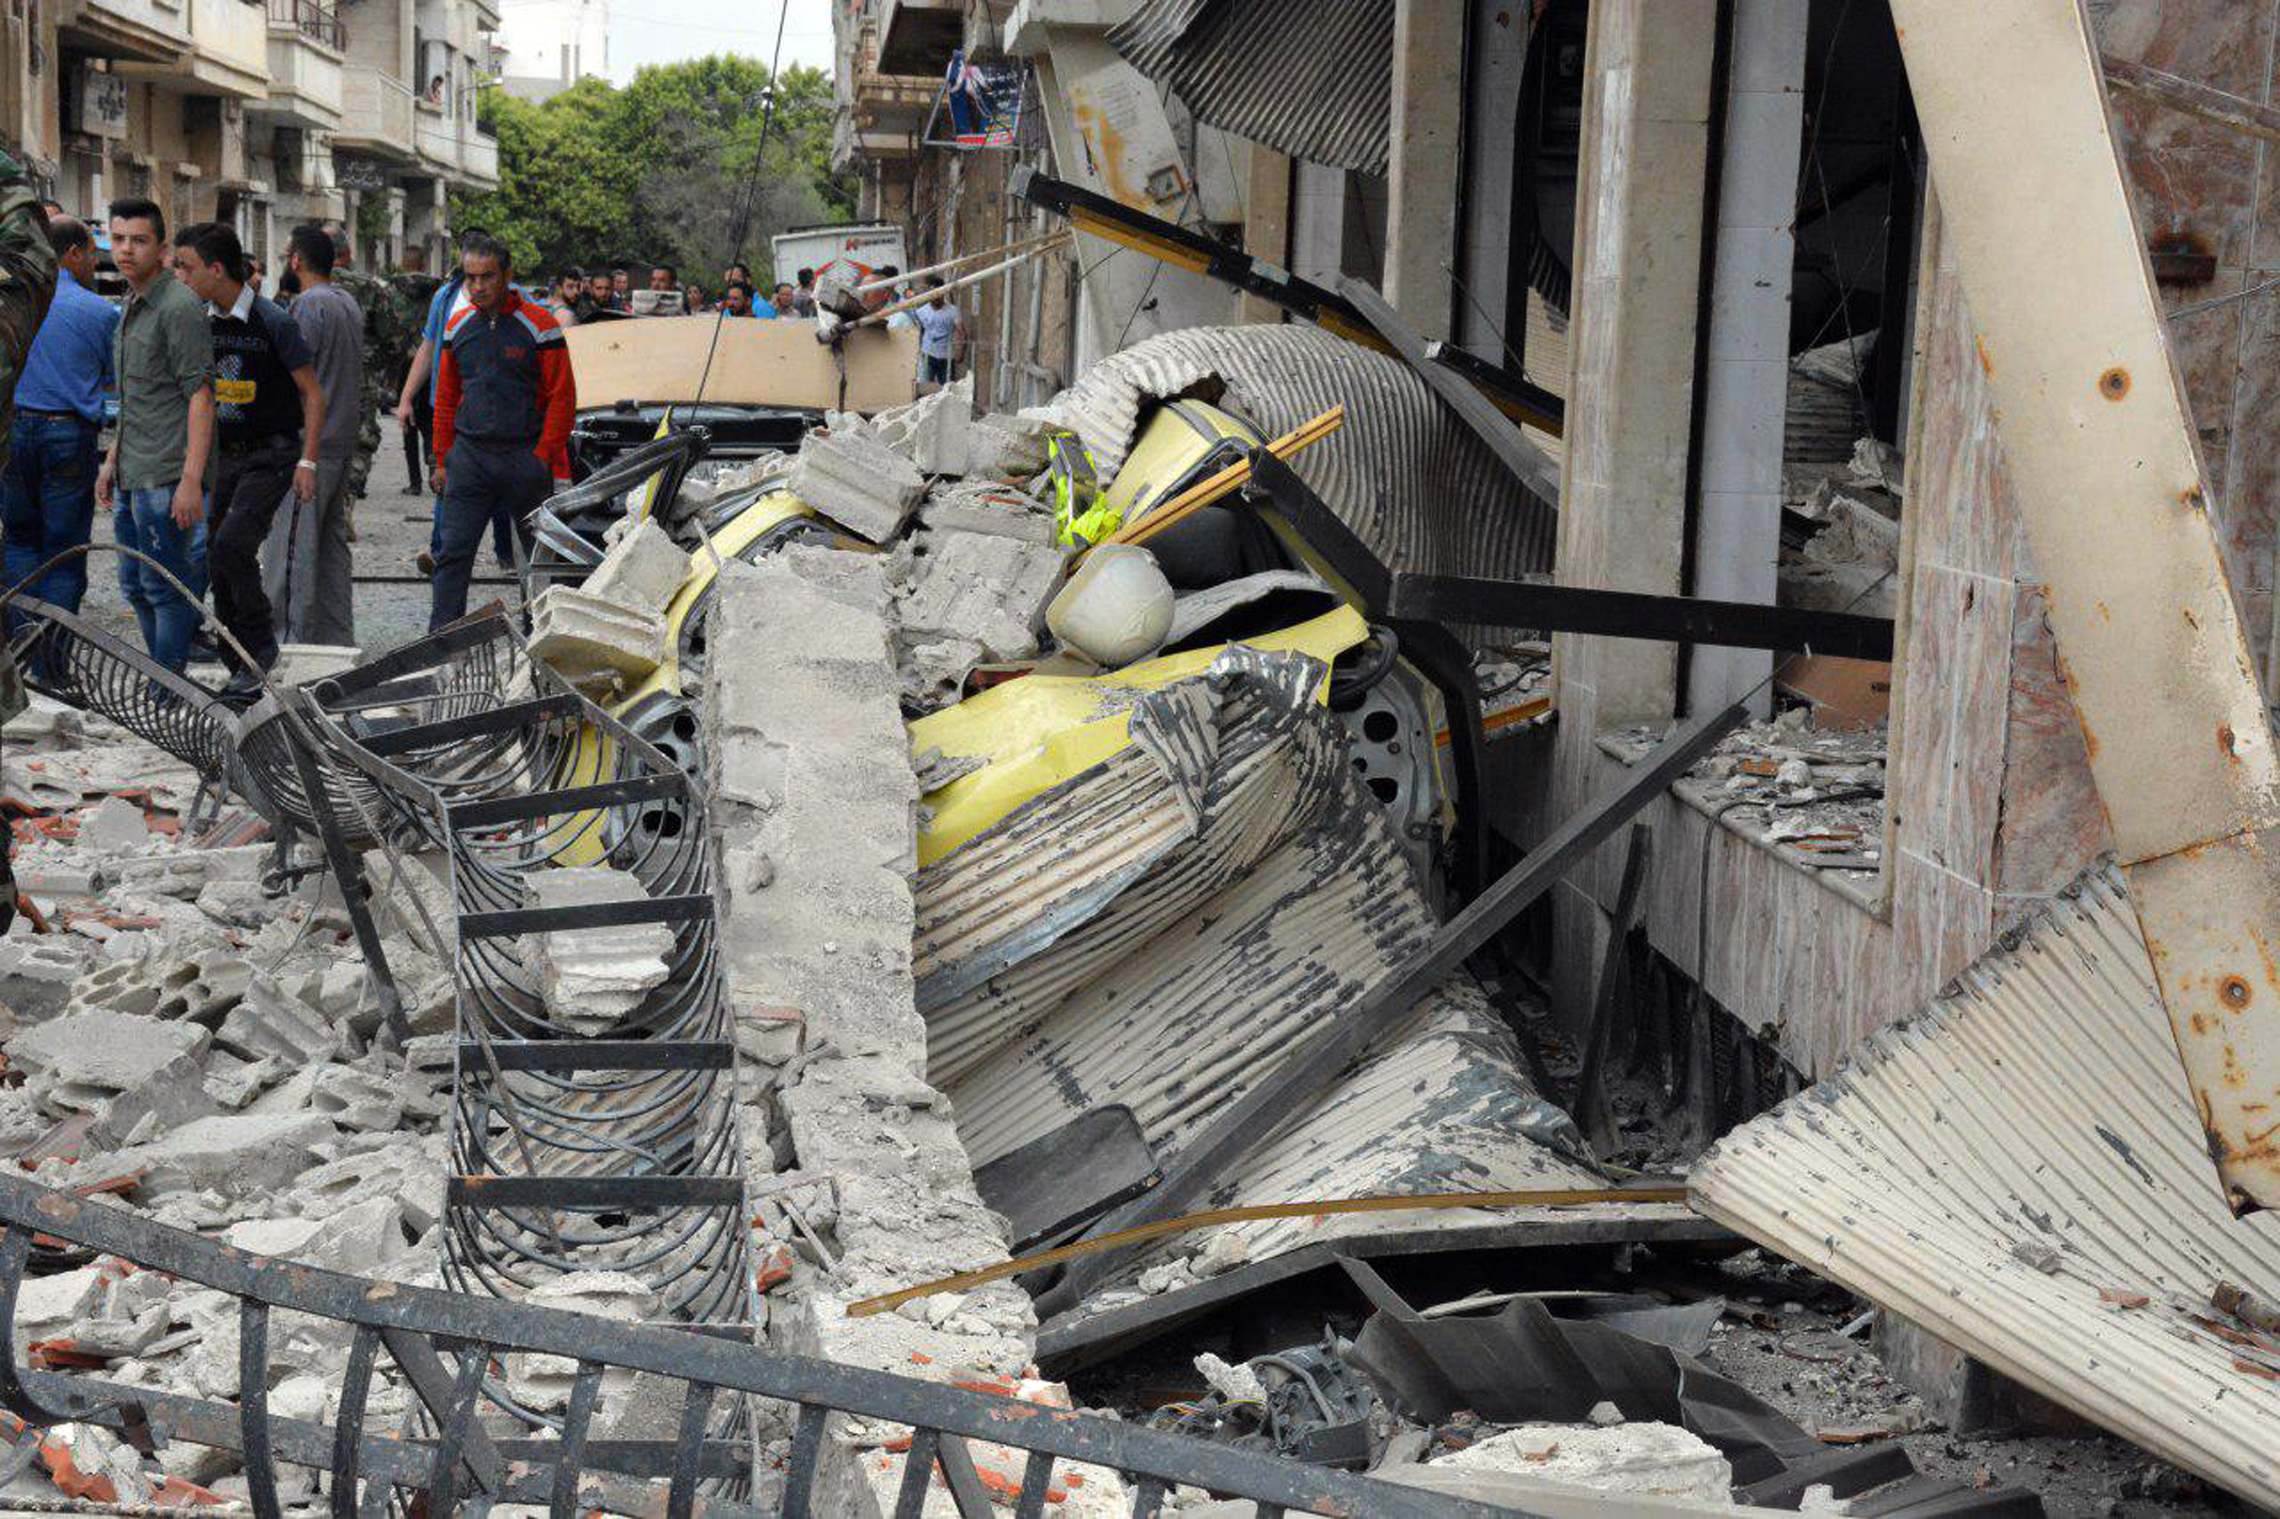 In this photo released by the Syrian official news agency SANA, Syrian citizens gather at the scene of an explosion in the central city of Homs, Syria.